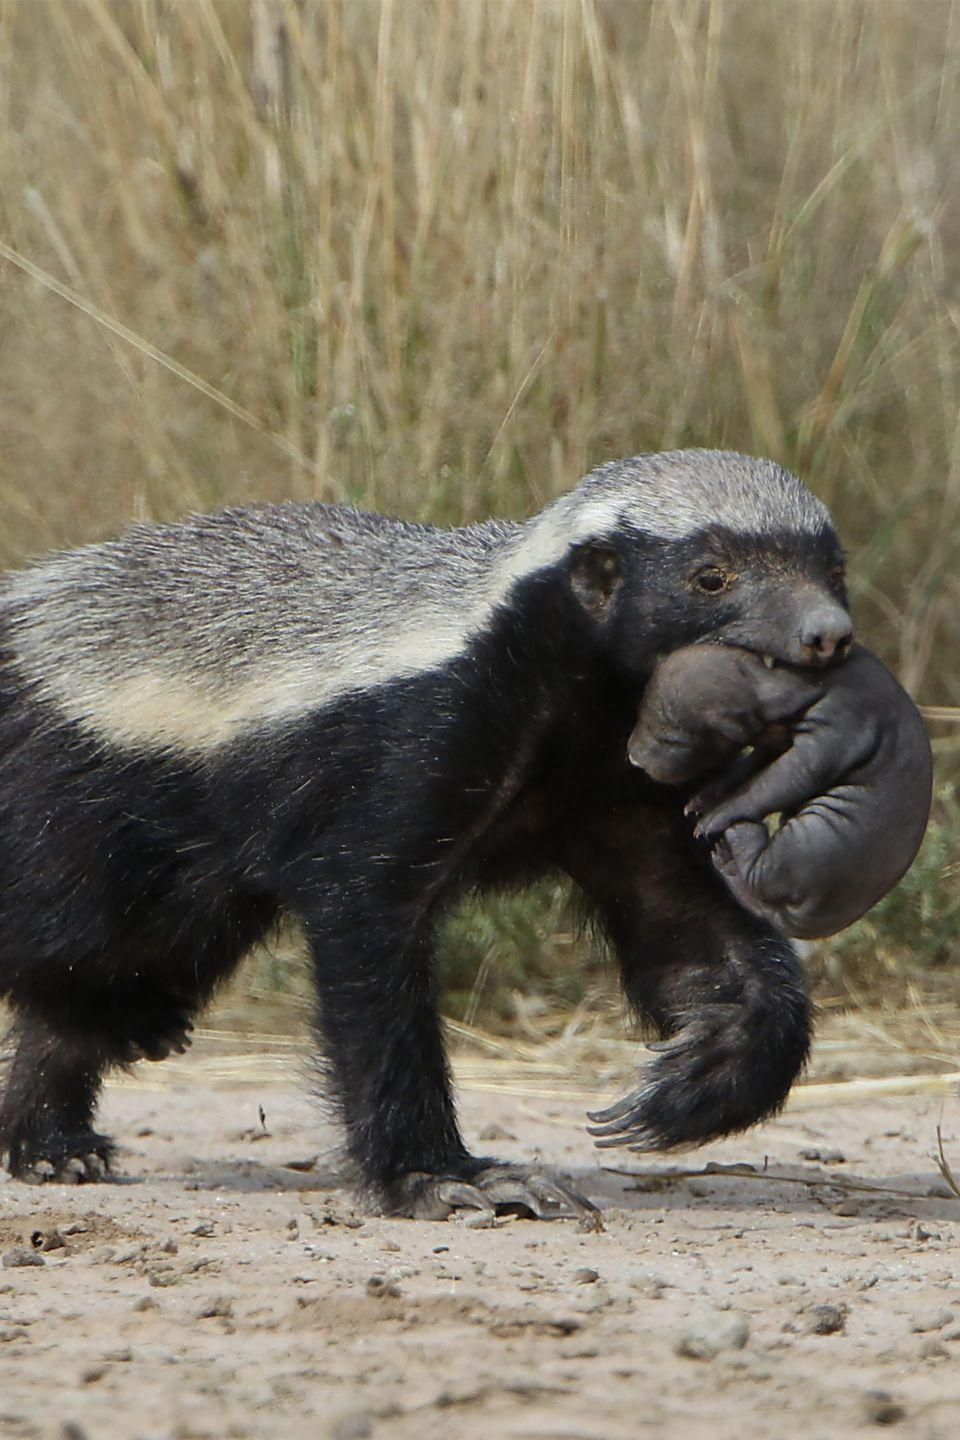 <p>Honey badgers are known as one of the most vicious animals on the planet. And they pretty much hunt <em>anything</em> because they're able to resist venom, an evolutionary wrinkle resulting from their diet of venomous snakes. From bugs to birds, crocodiles, and pythons, they take them all on. And they've evolved to digest <em>entire</em> animals, including bones and feathers.</p>